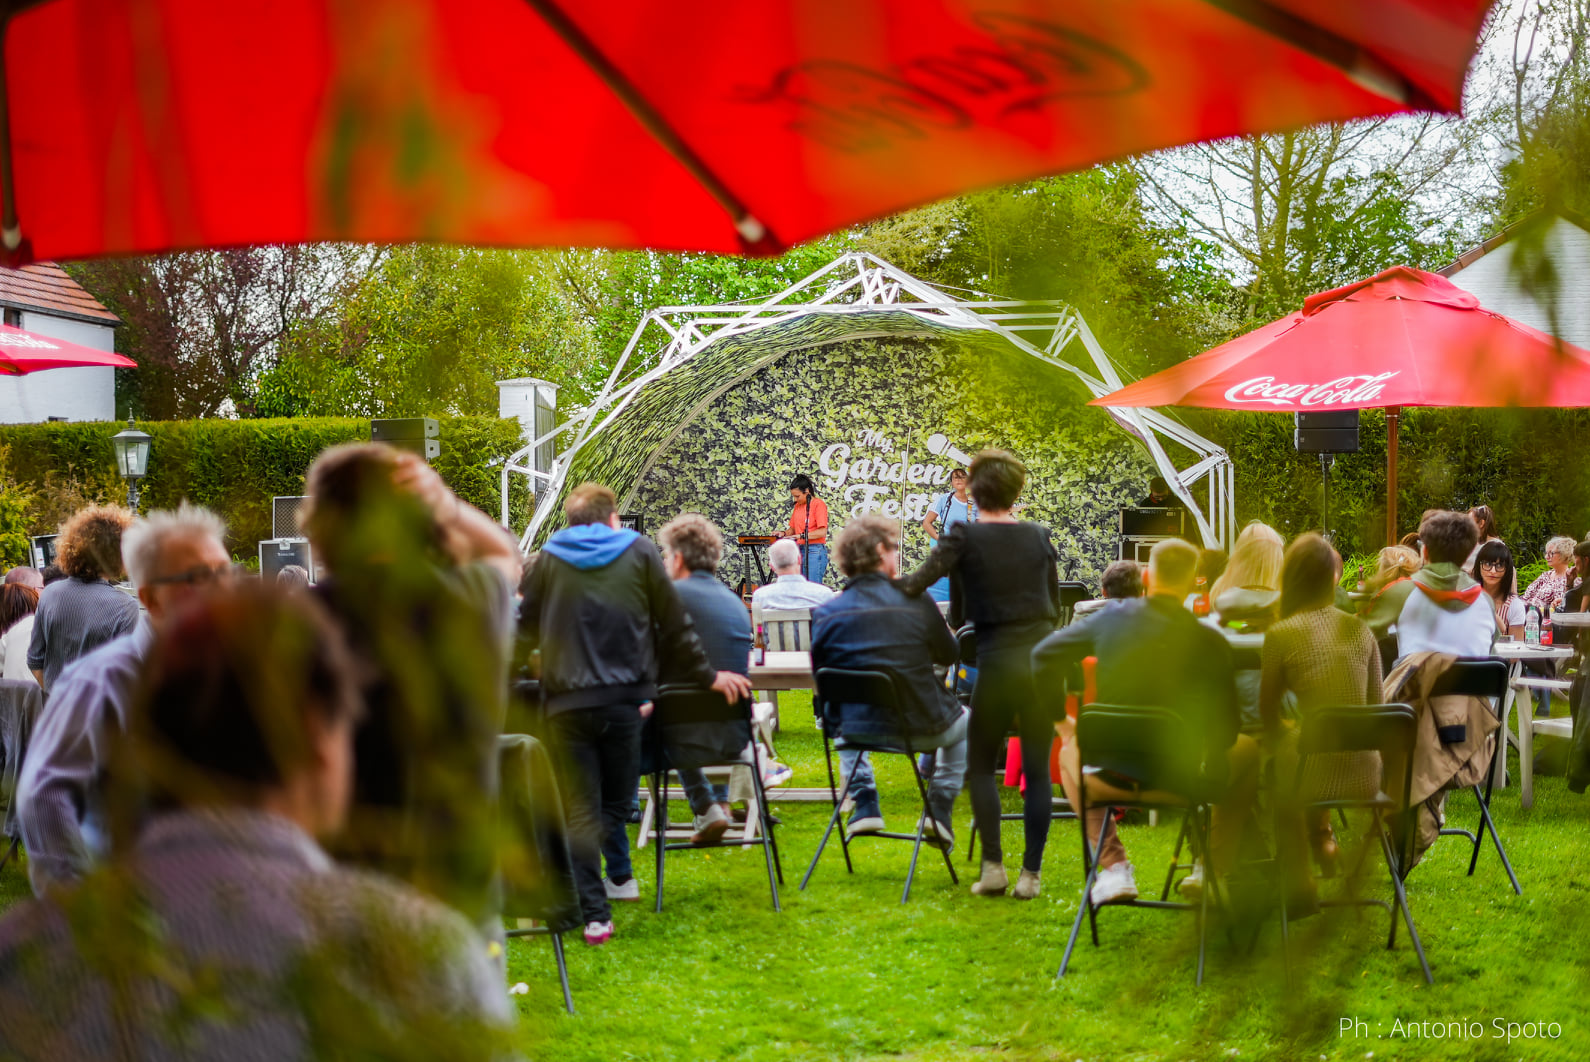 A festival with people and a stage in a garden